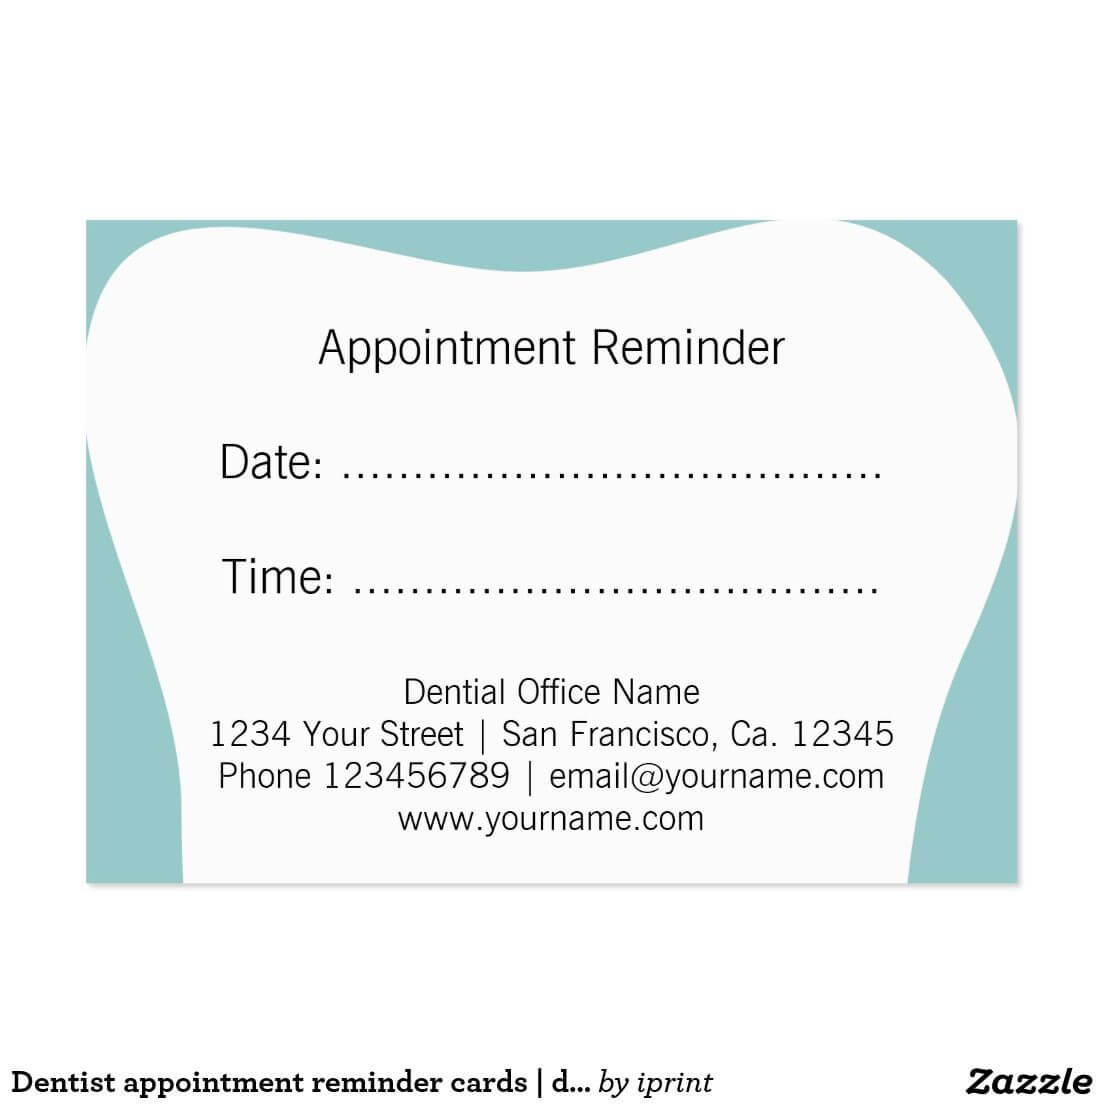 Dentist Appointment Reminder Cards | Dental Office | Zazzle Intended For Dentist Appointment Card Template